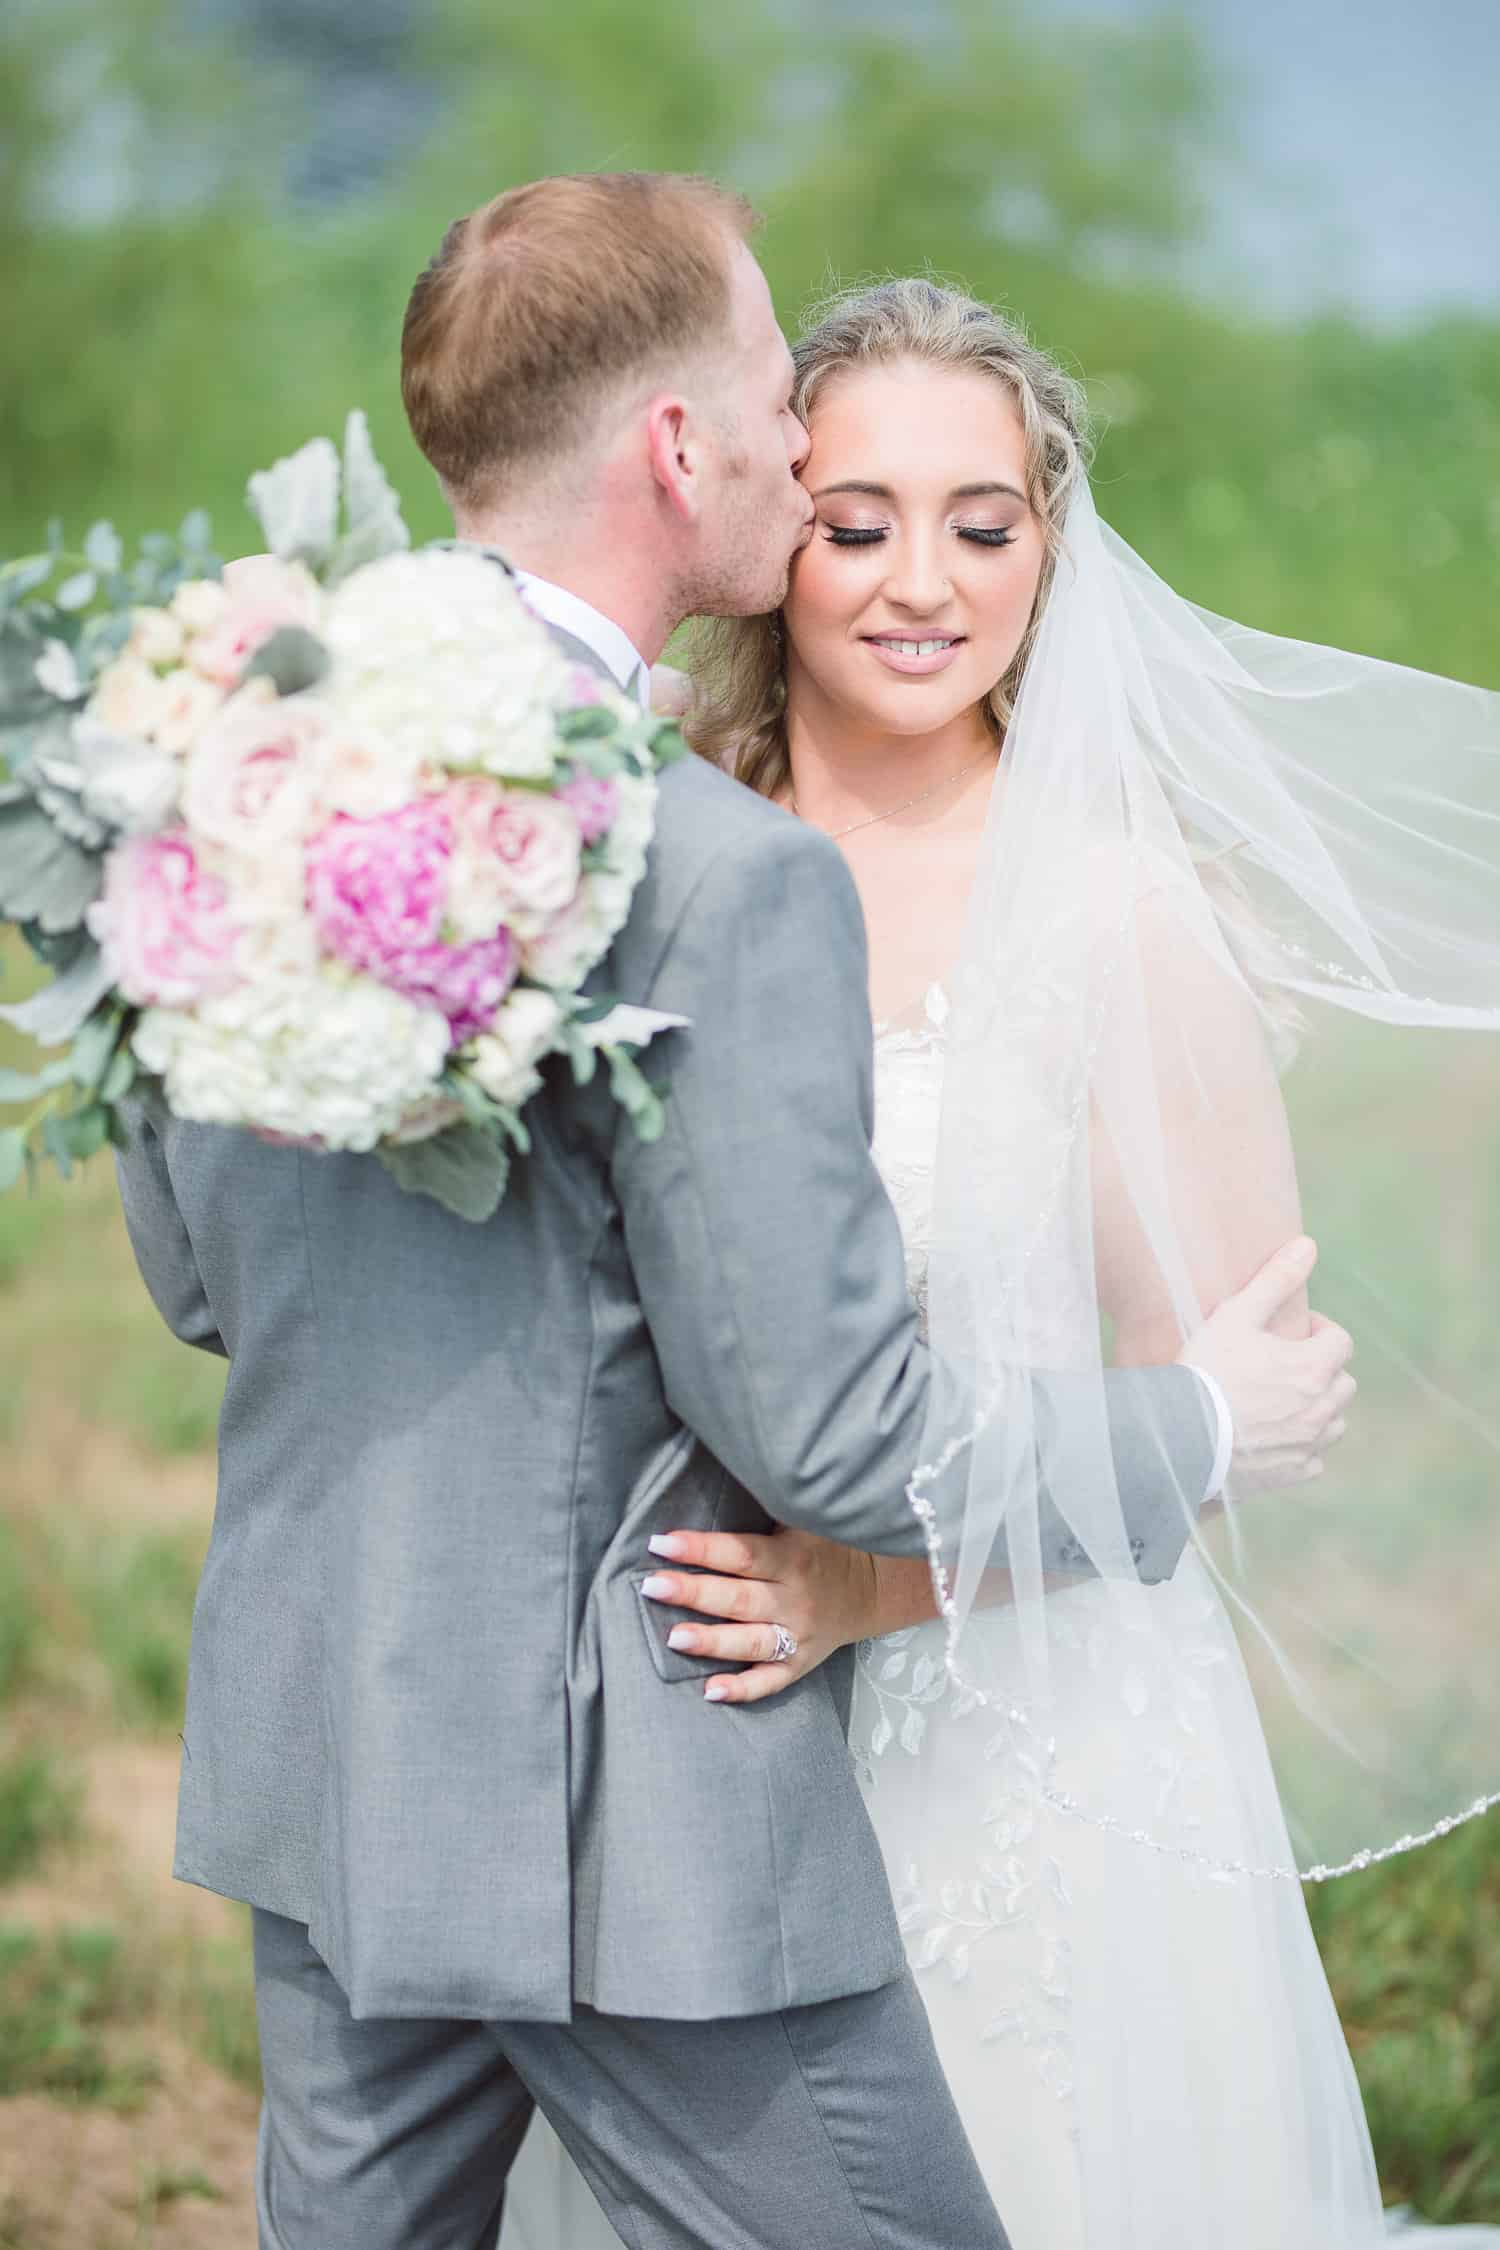 Mildale Farm Wedding | Christi + Evan - eGolden Moments